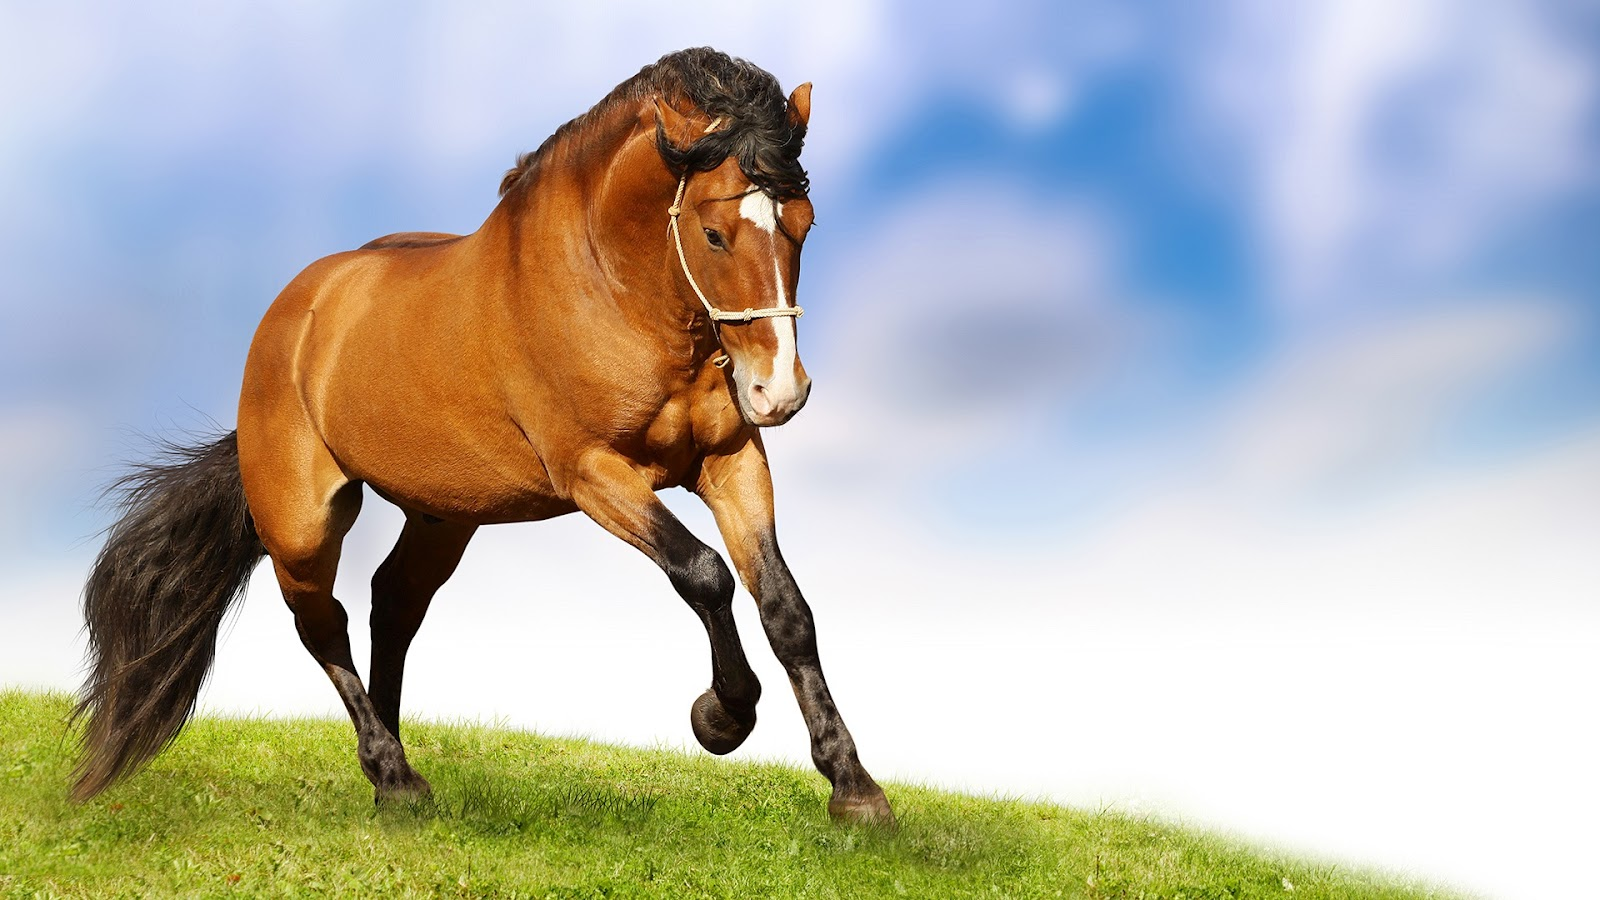 Wallpapers World: Horse Wallpapers Free Download For